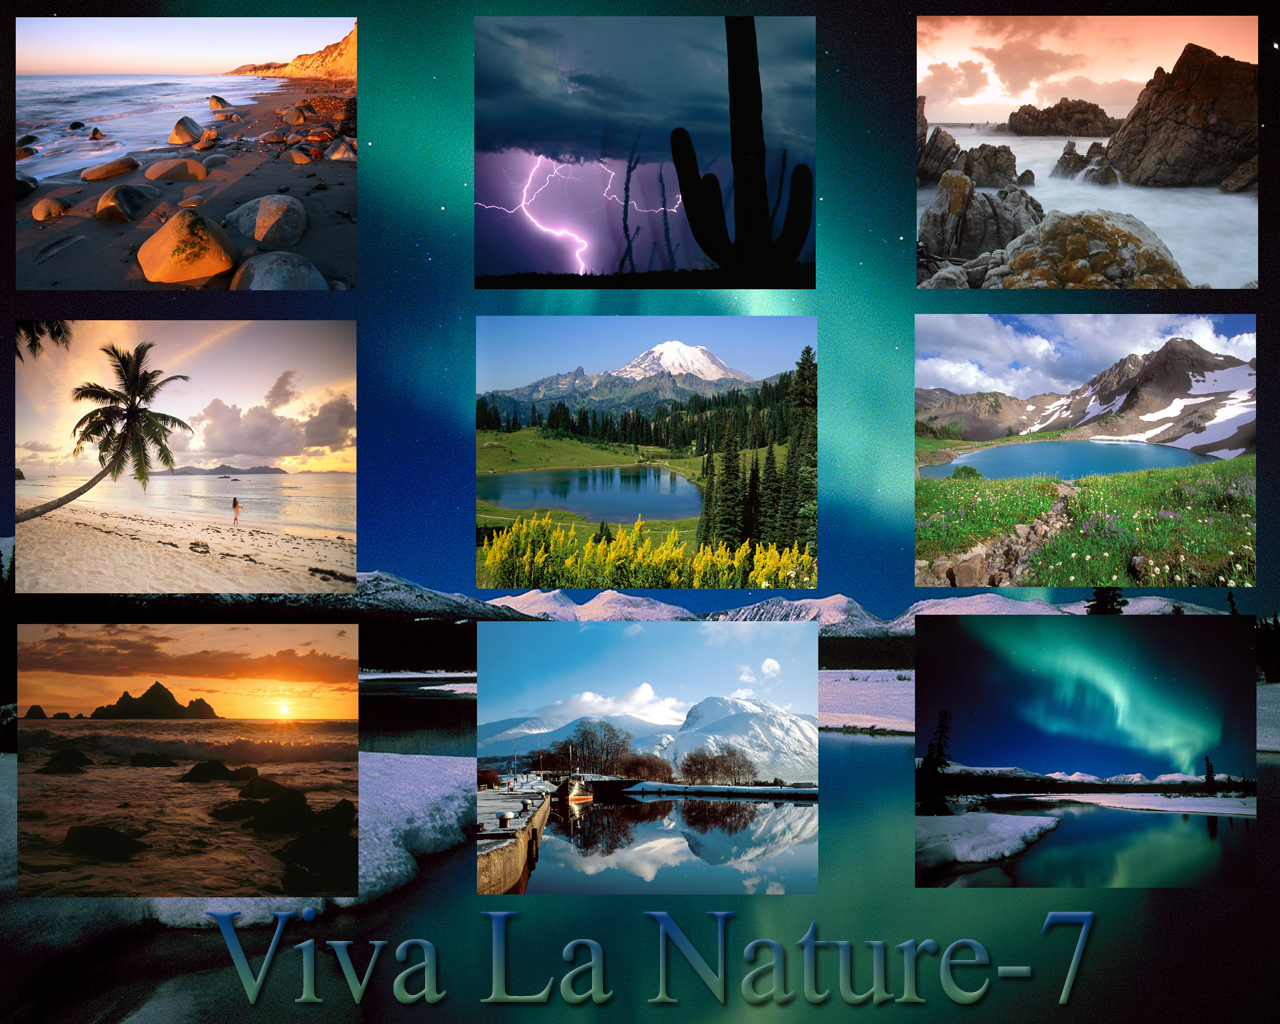 Nature Wallpaper Pack Viva La Nature Wallpaper pack